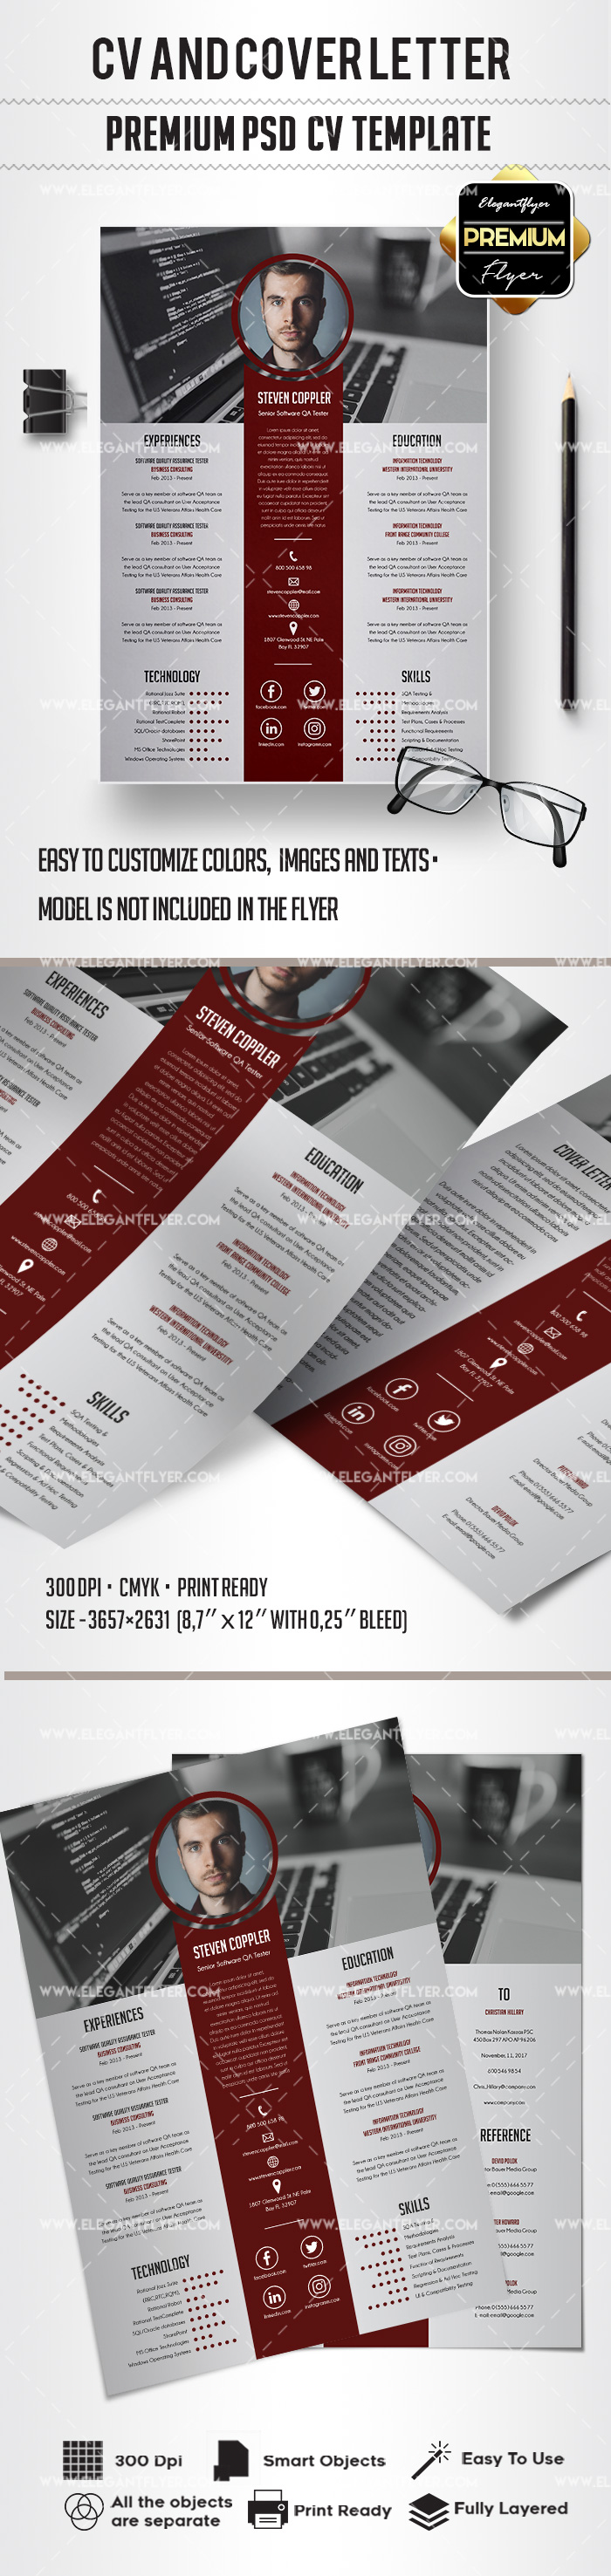 Template CV and Cover Letter PSD